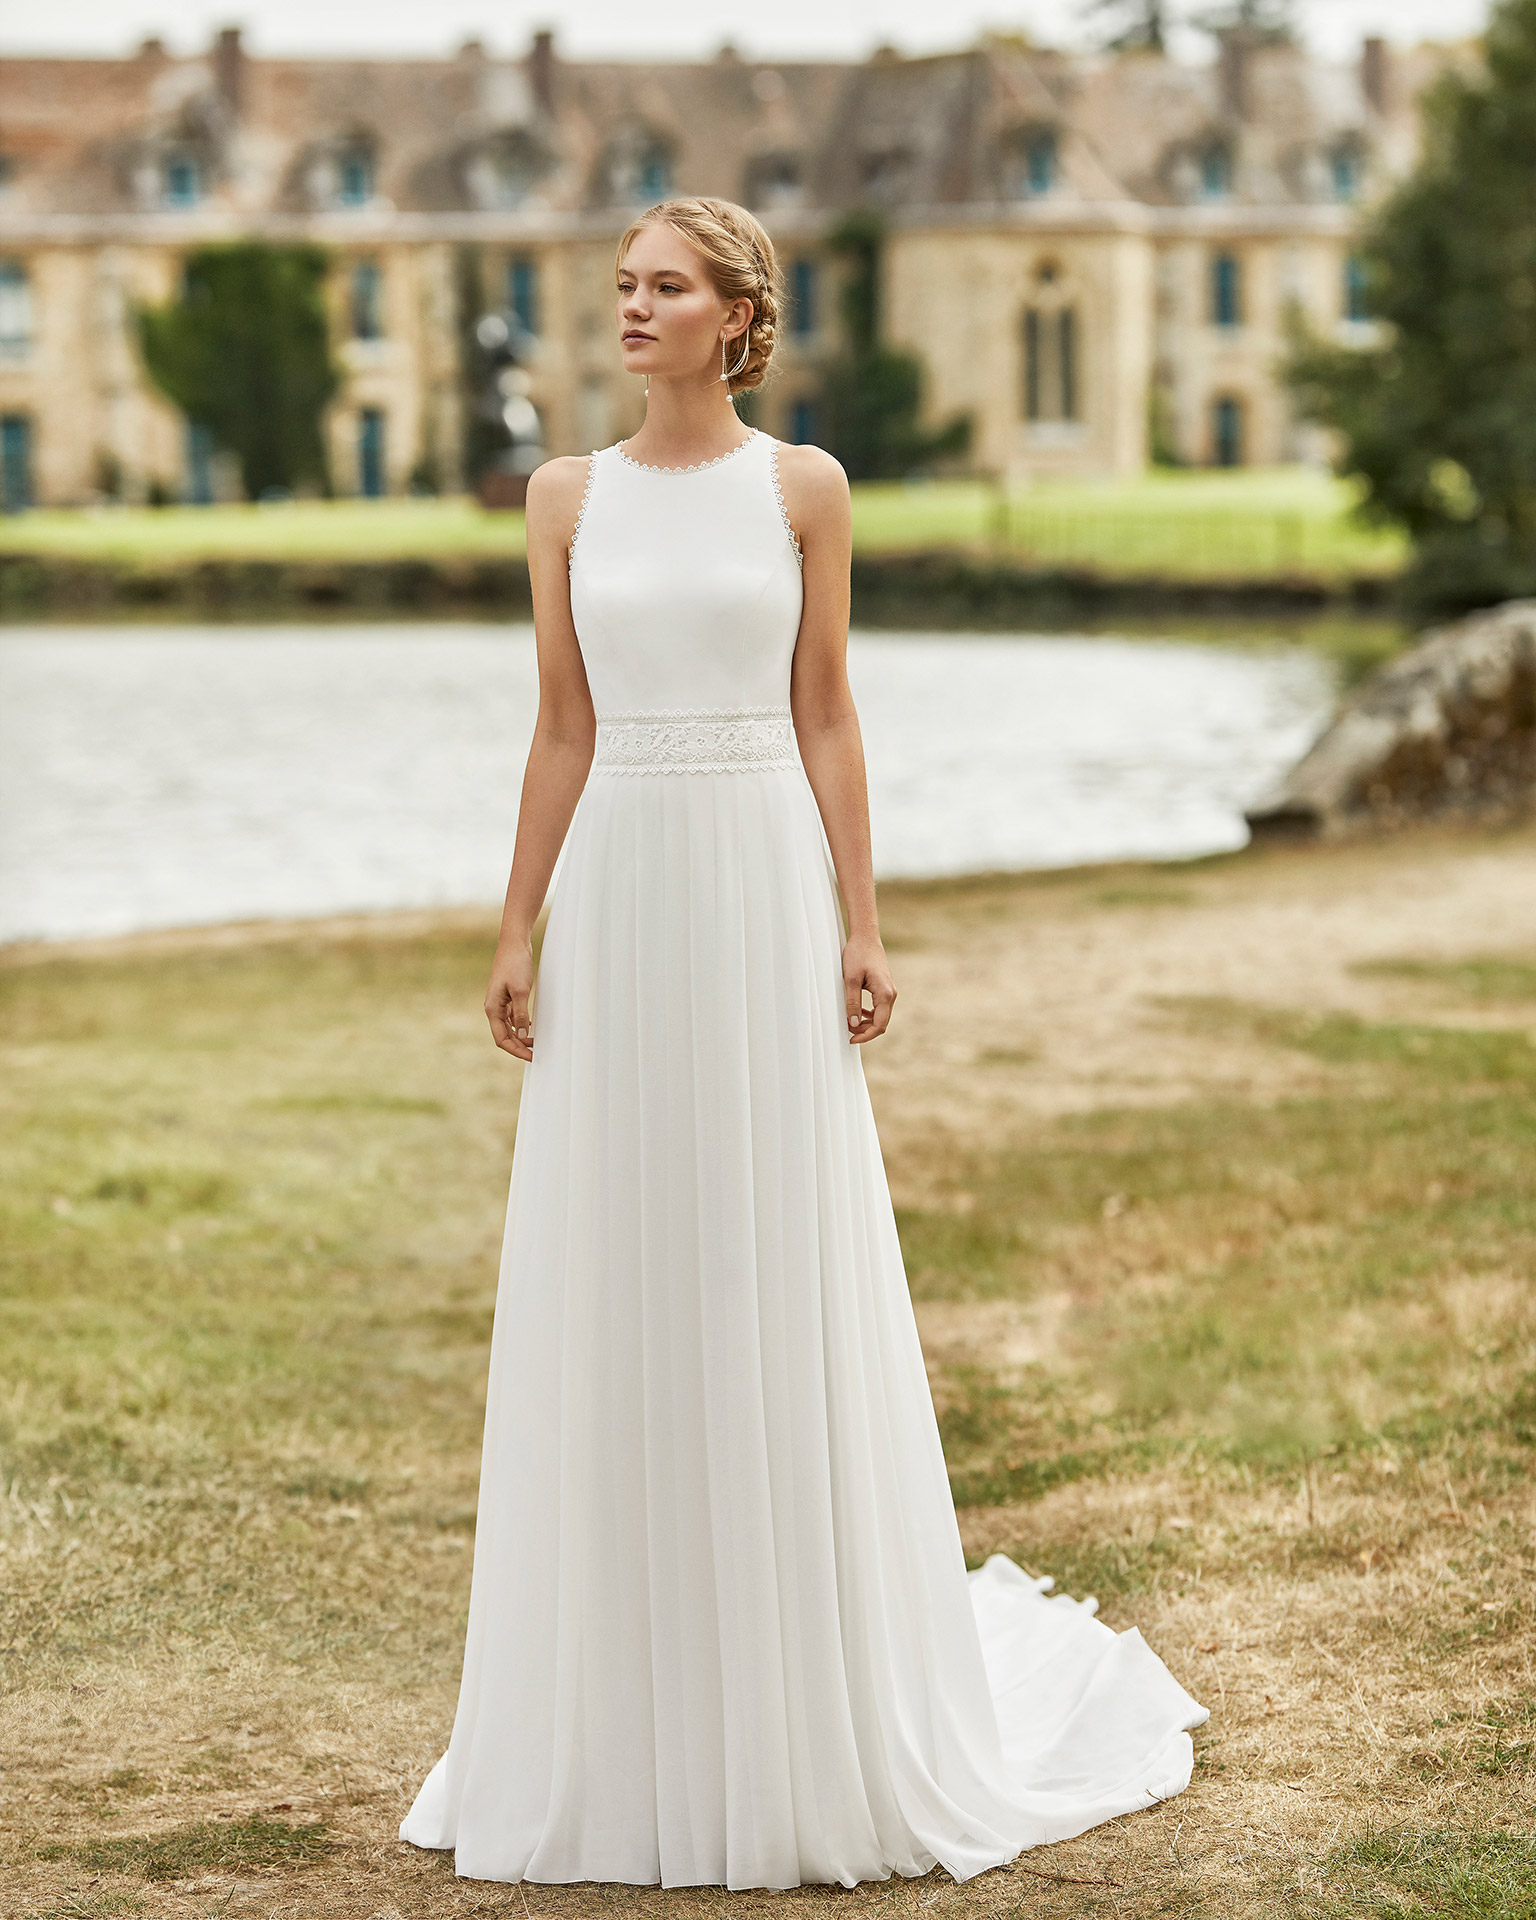 Wedding dress in chiffon. Halter neckline, shoulder straps with lace edging, lace belt and low teardrop back in lace. 2021 ALMANOVIA Collection.